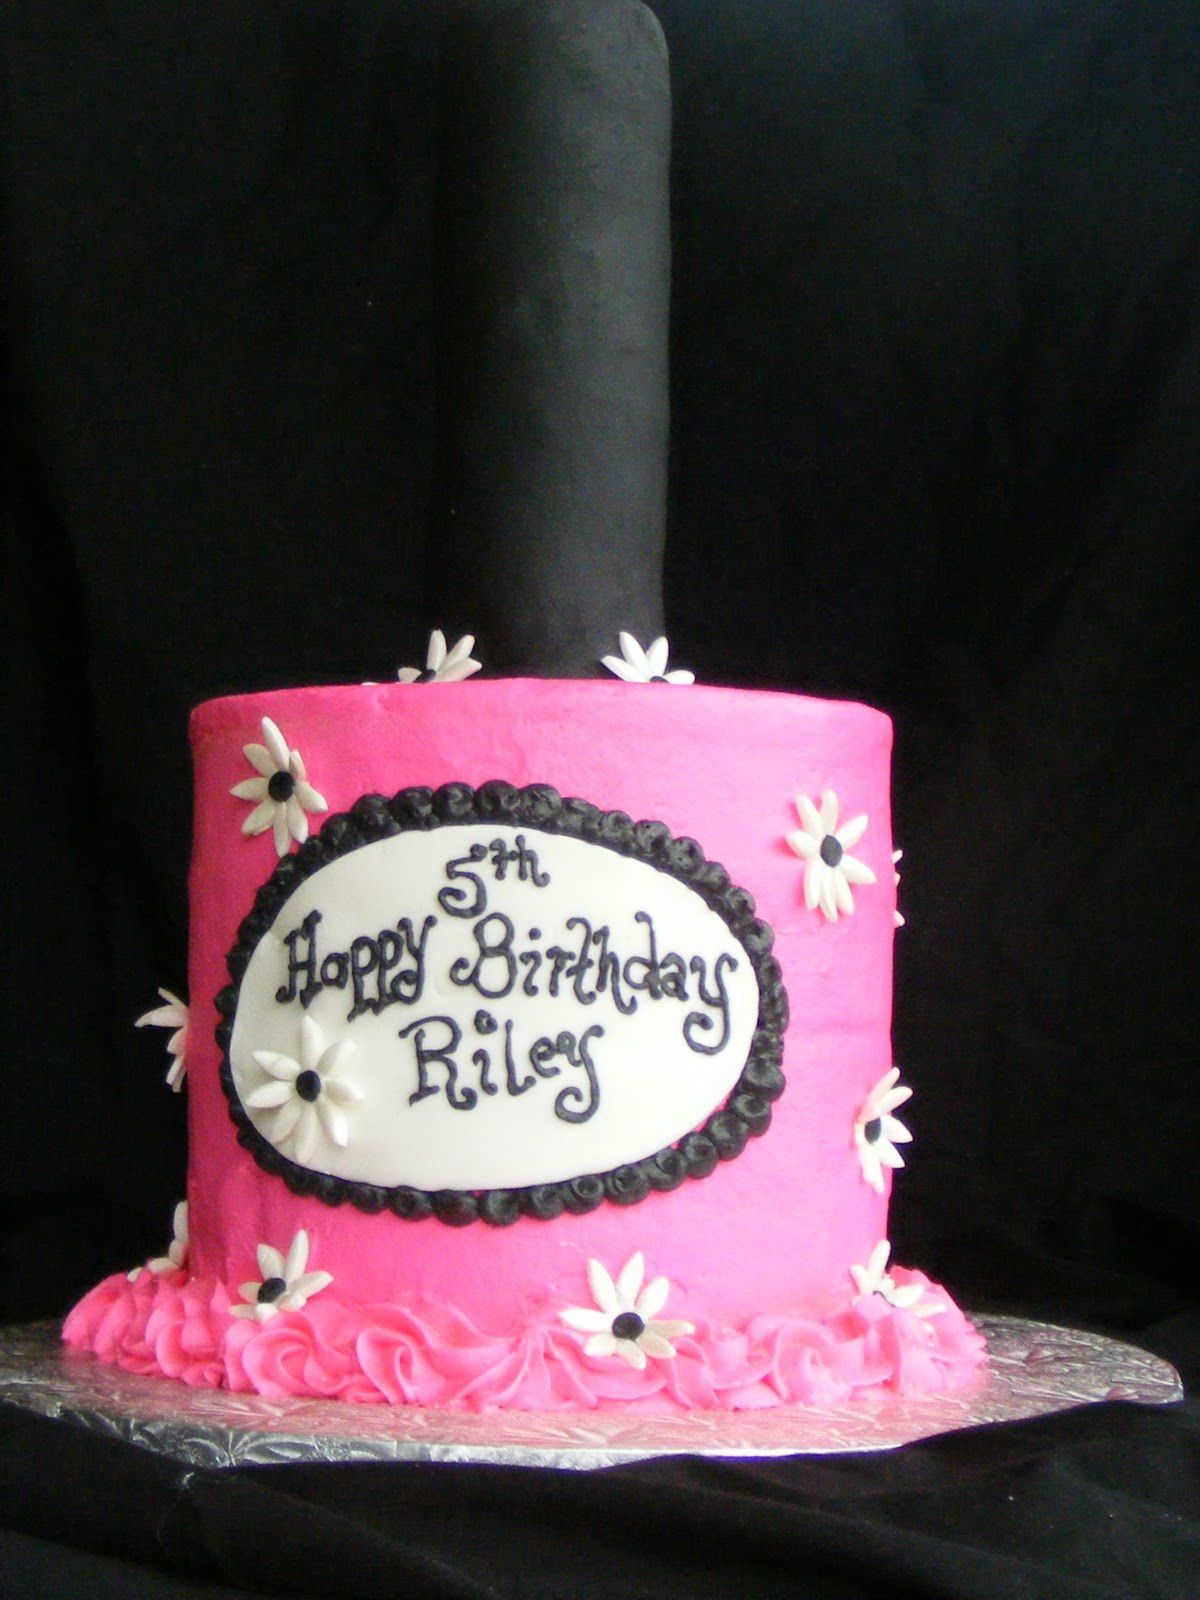 nail-plosh-cake-feb1811--1-.JPG